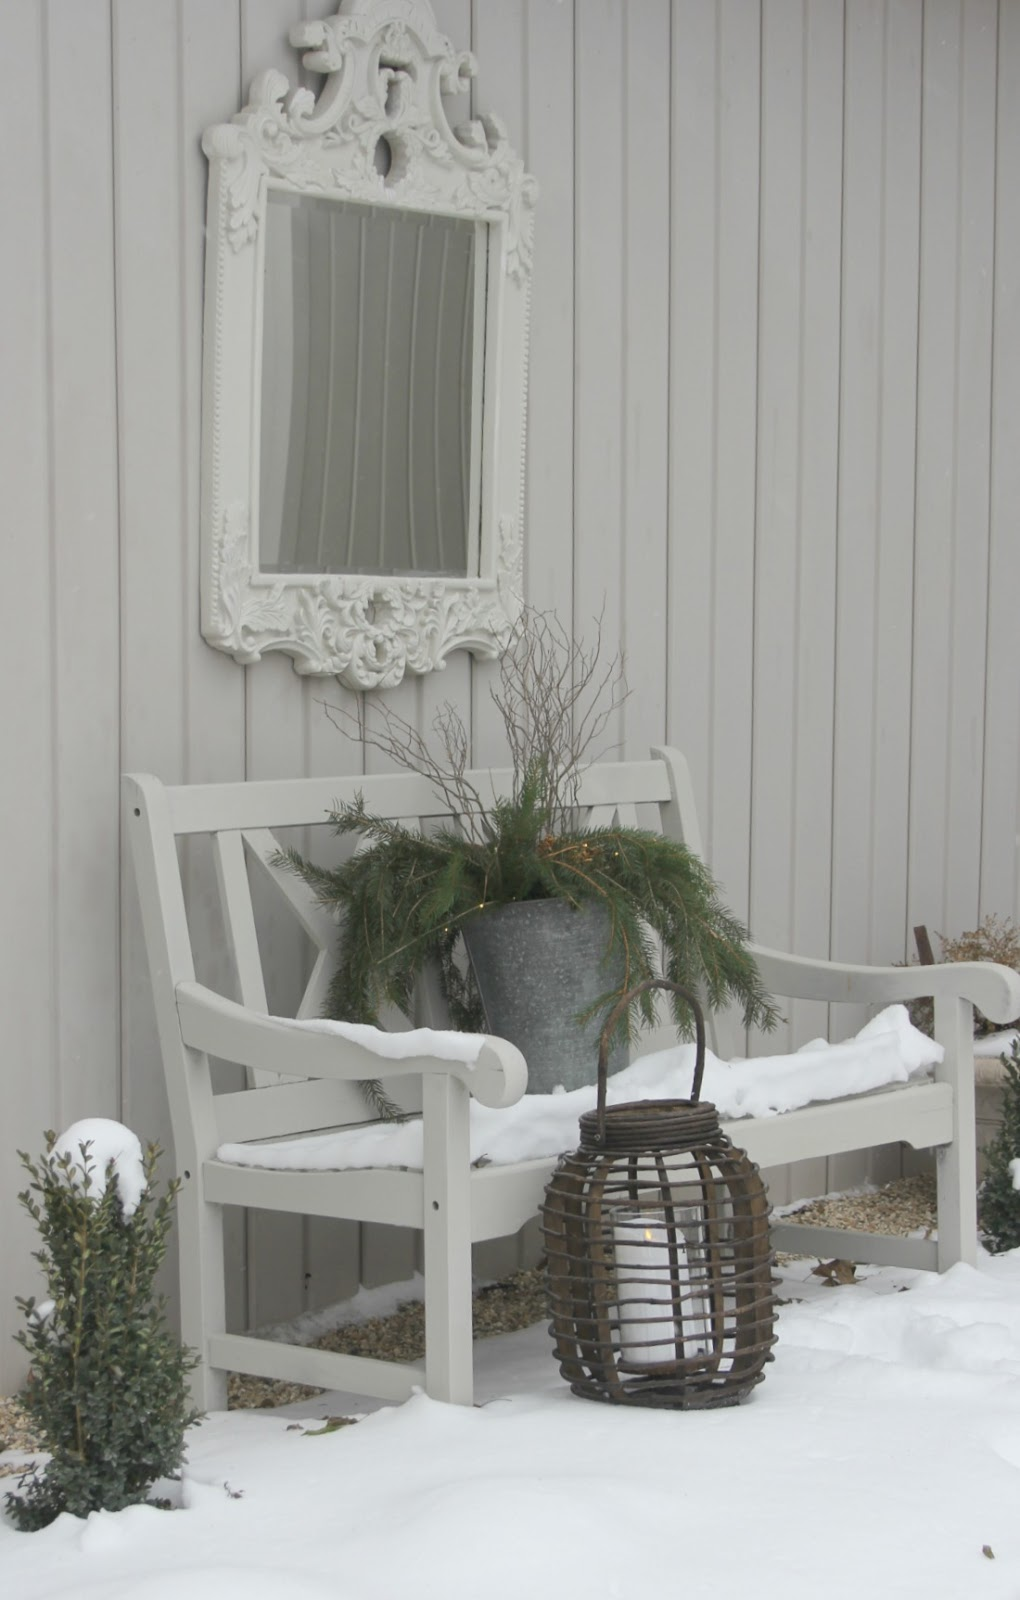 A Nordic French winter vignette with snow, bench, mirror, lantern, and rustic charm. Hello Lovely Studio.